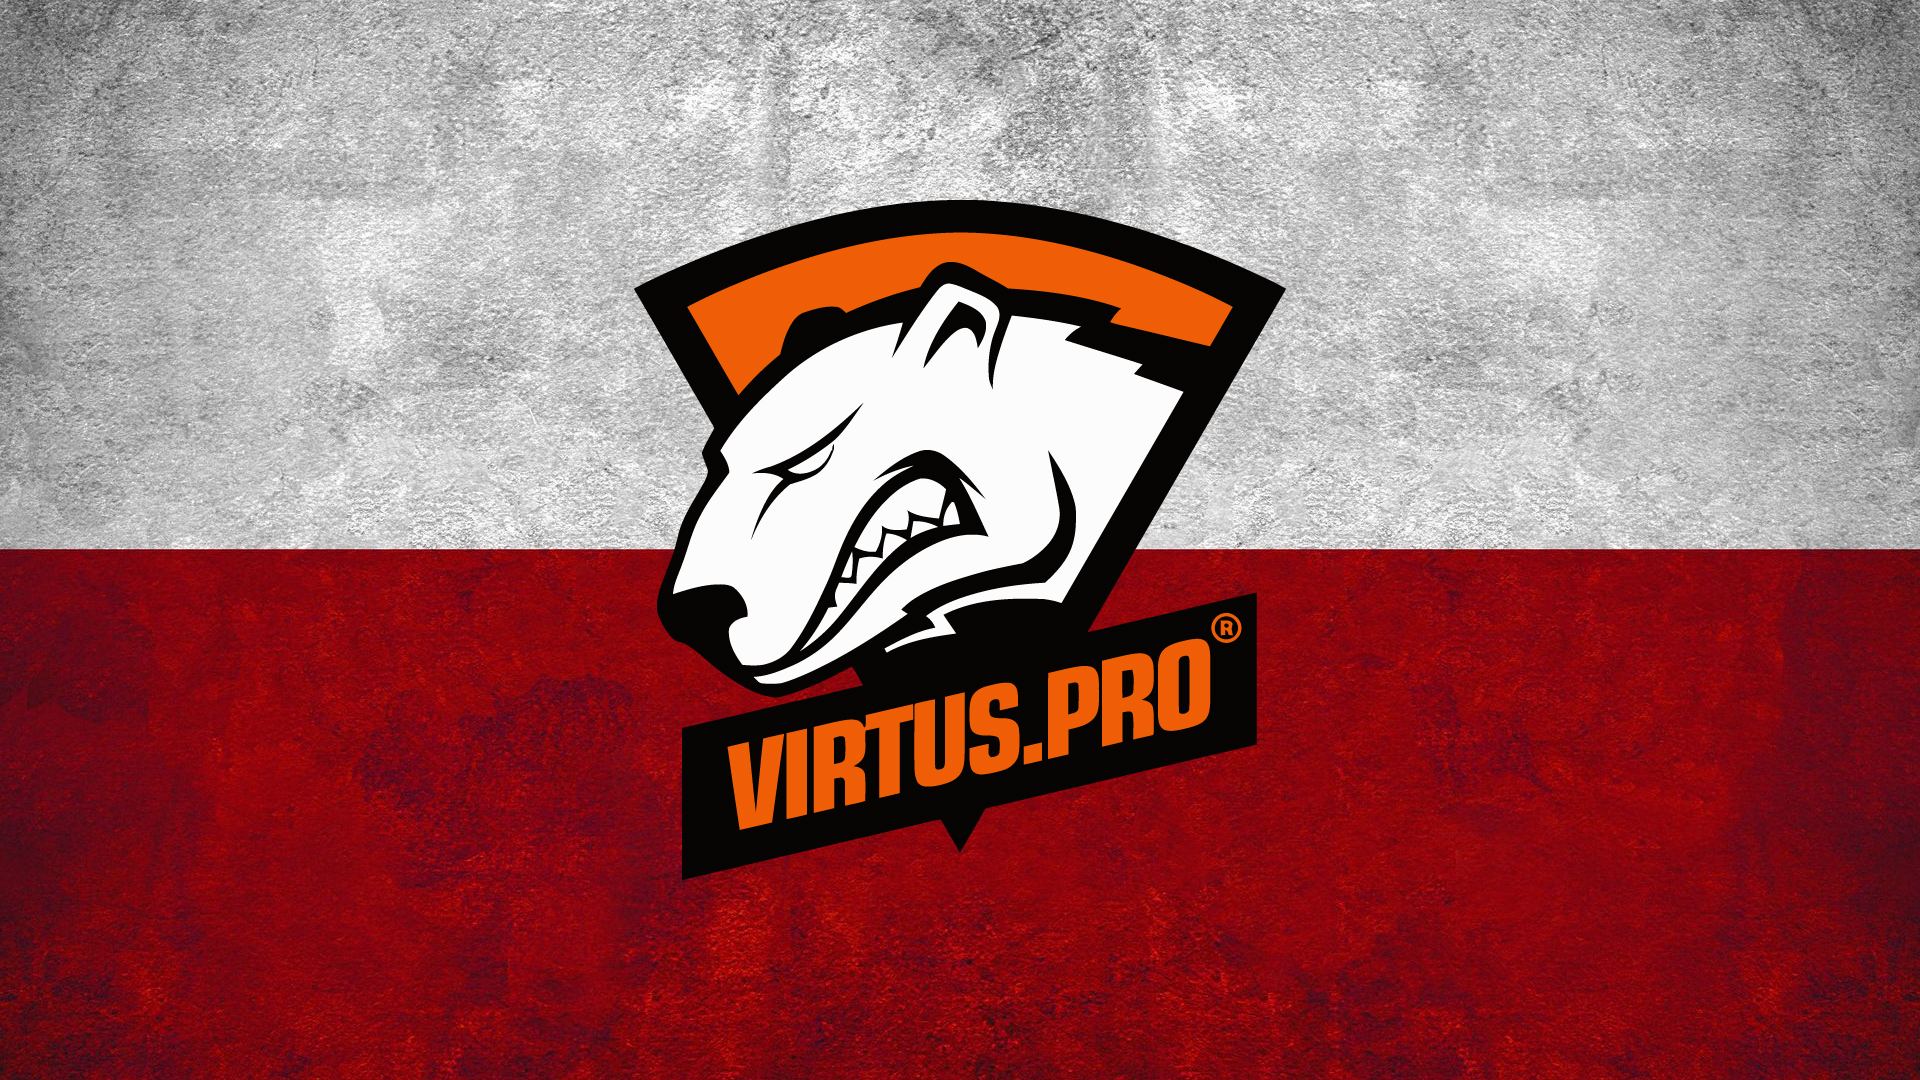 Hd Video Game Wallpapers 1080p Virtus Pro Cs Go Wallpapers And Backgrounds